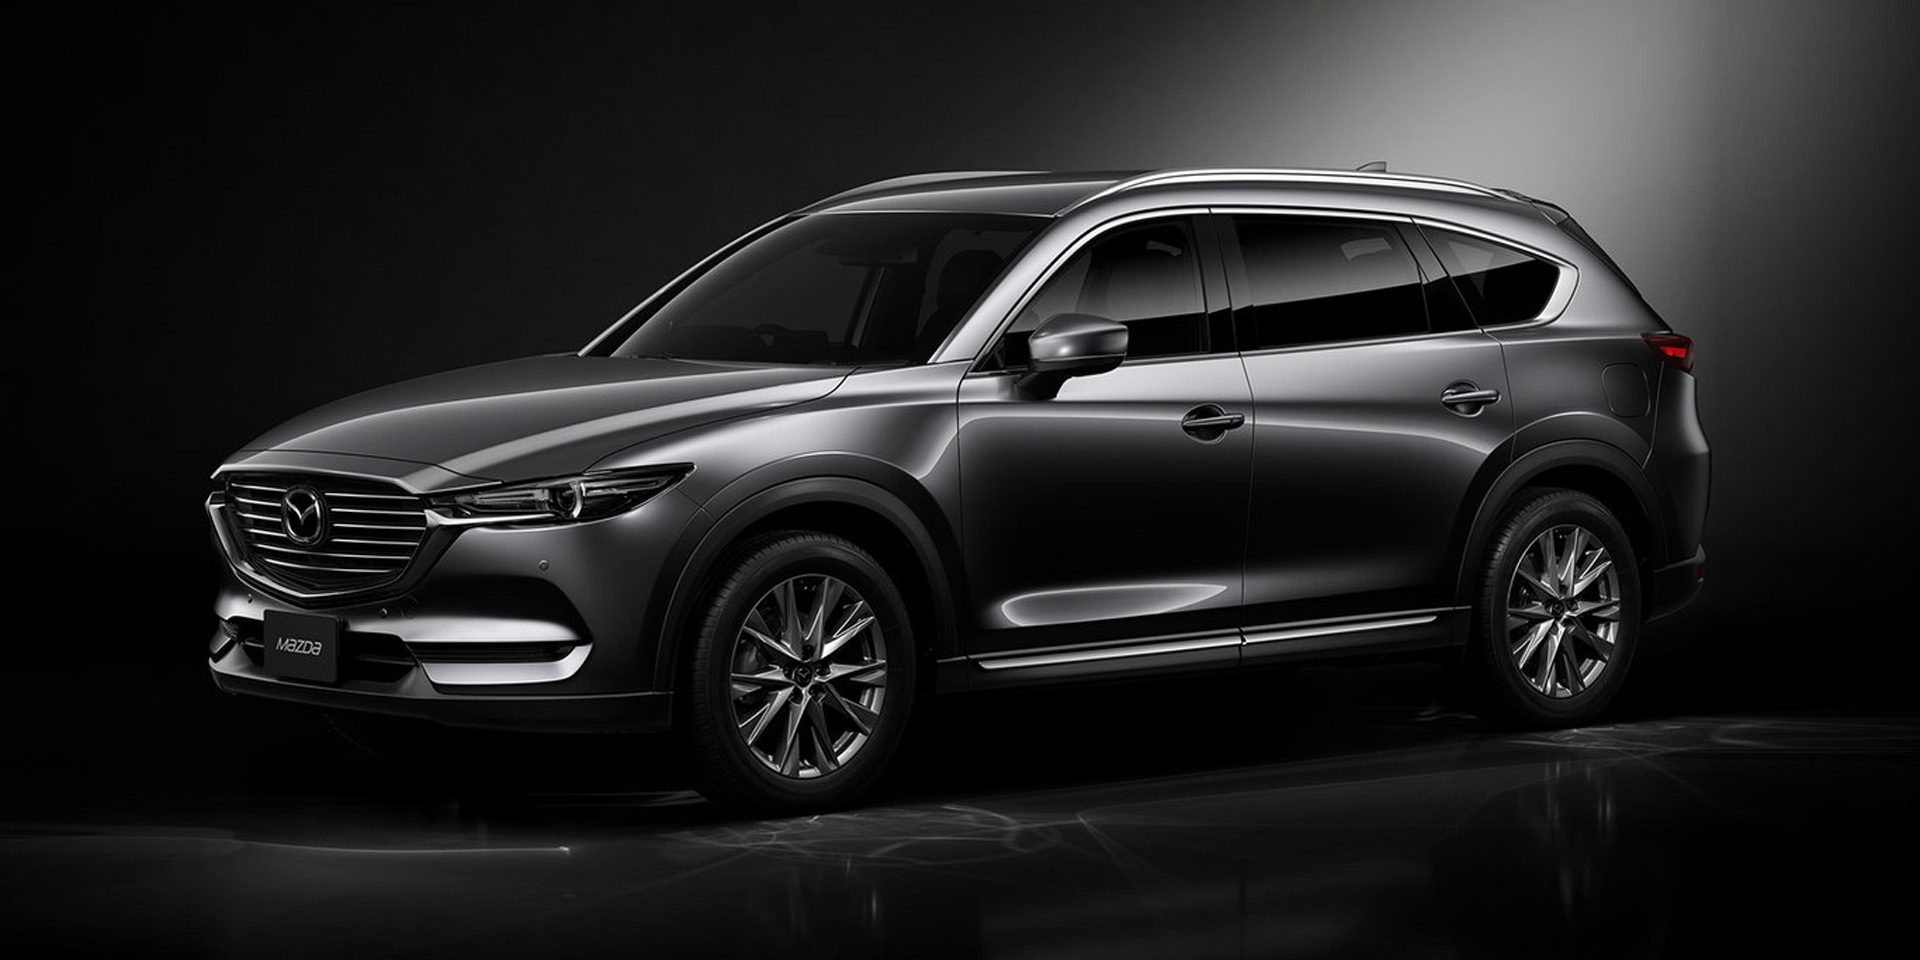 48 All New 2020 Mazda Cx 9 Rumors Release